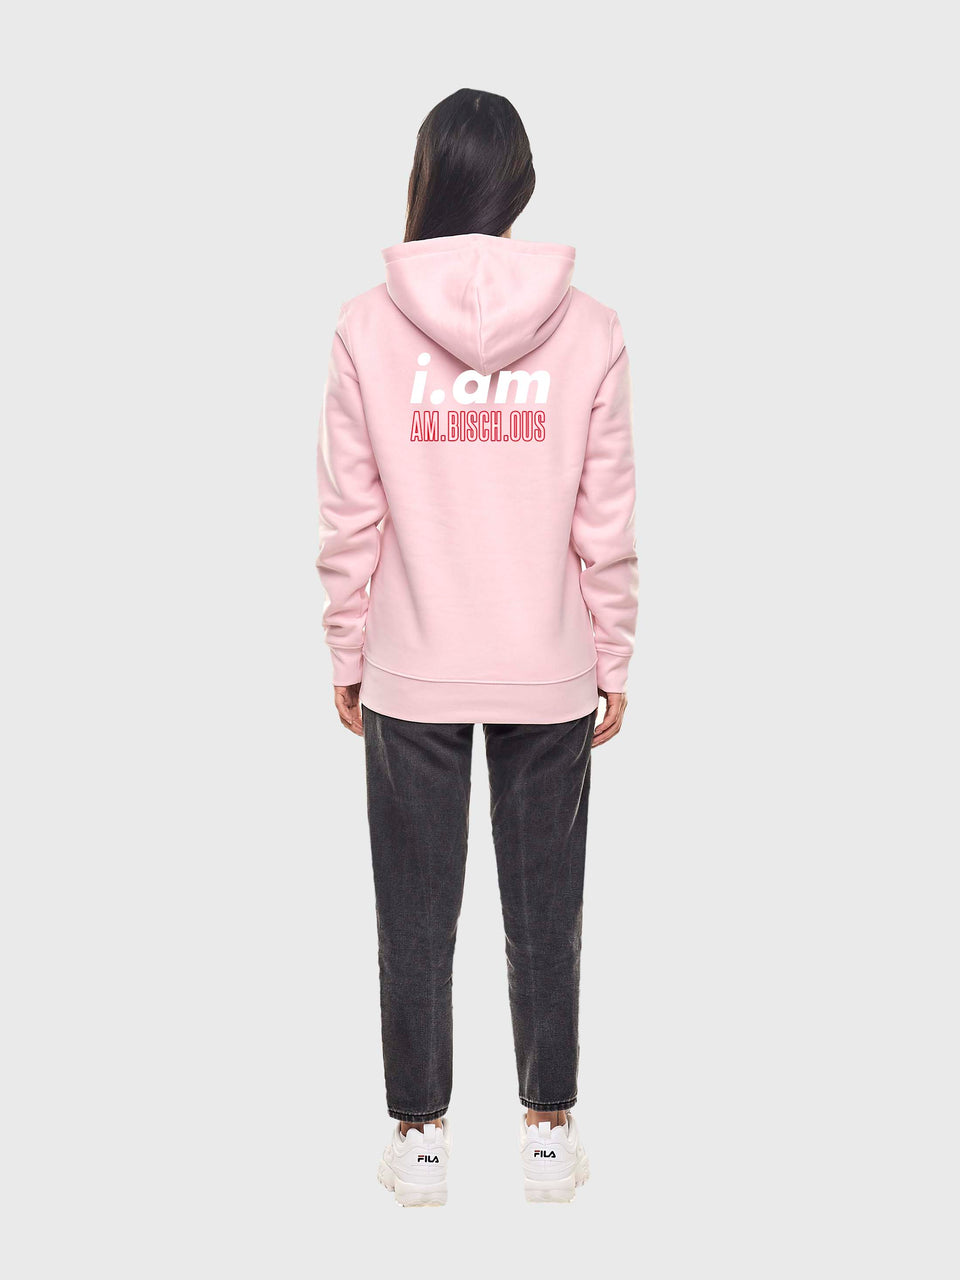 Am.bisch.ous - Pink - Unisex pull over hoodie